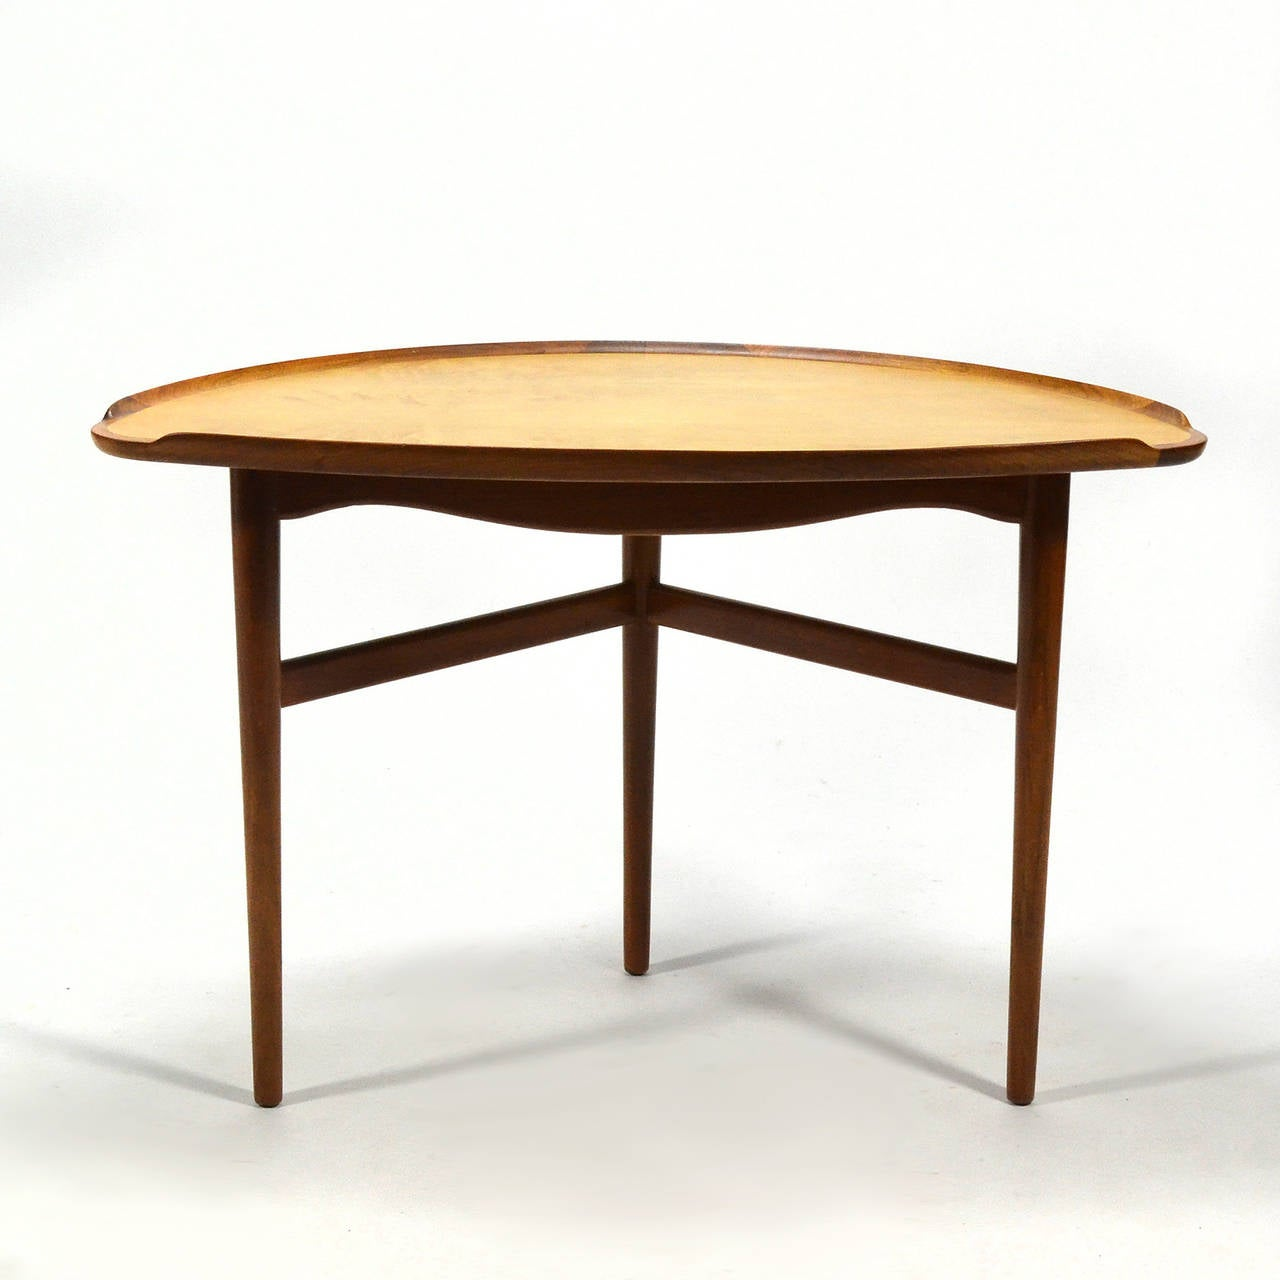 Scandinavian Modern Finn Juhl Table For Sale